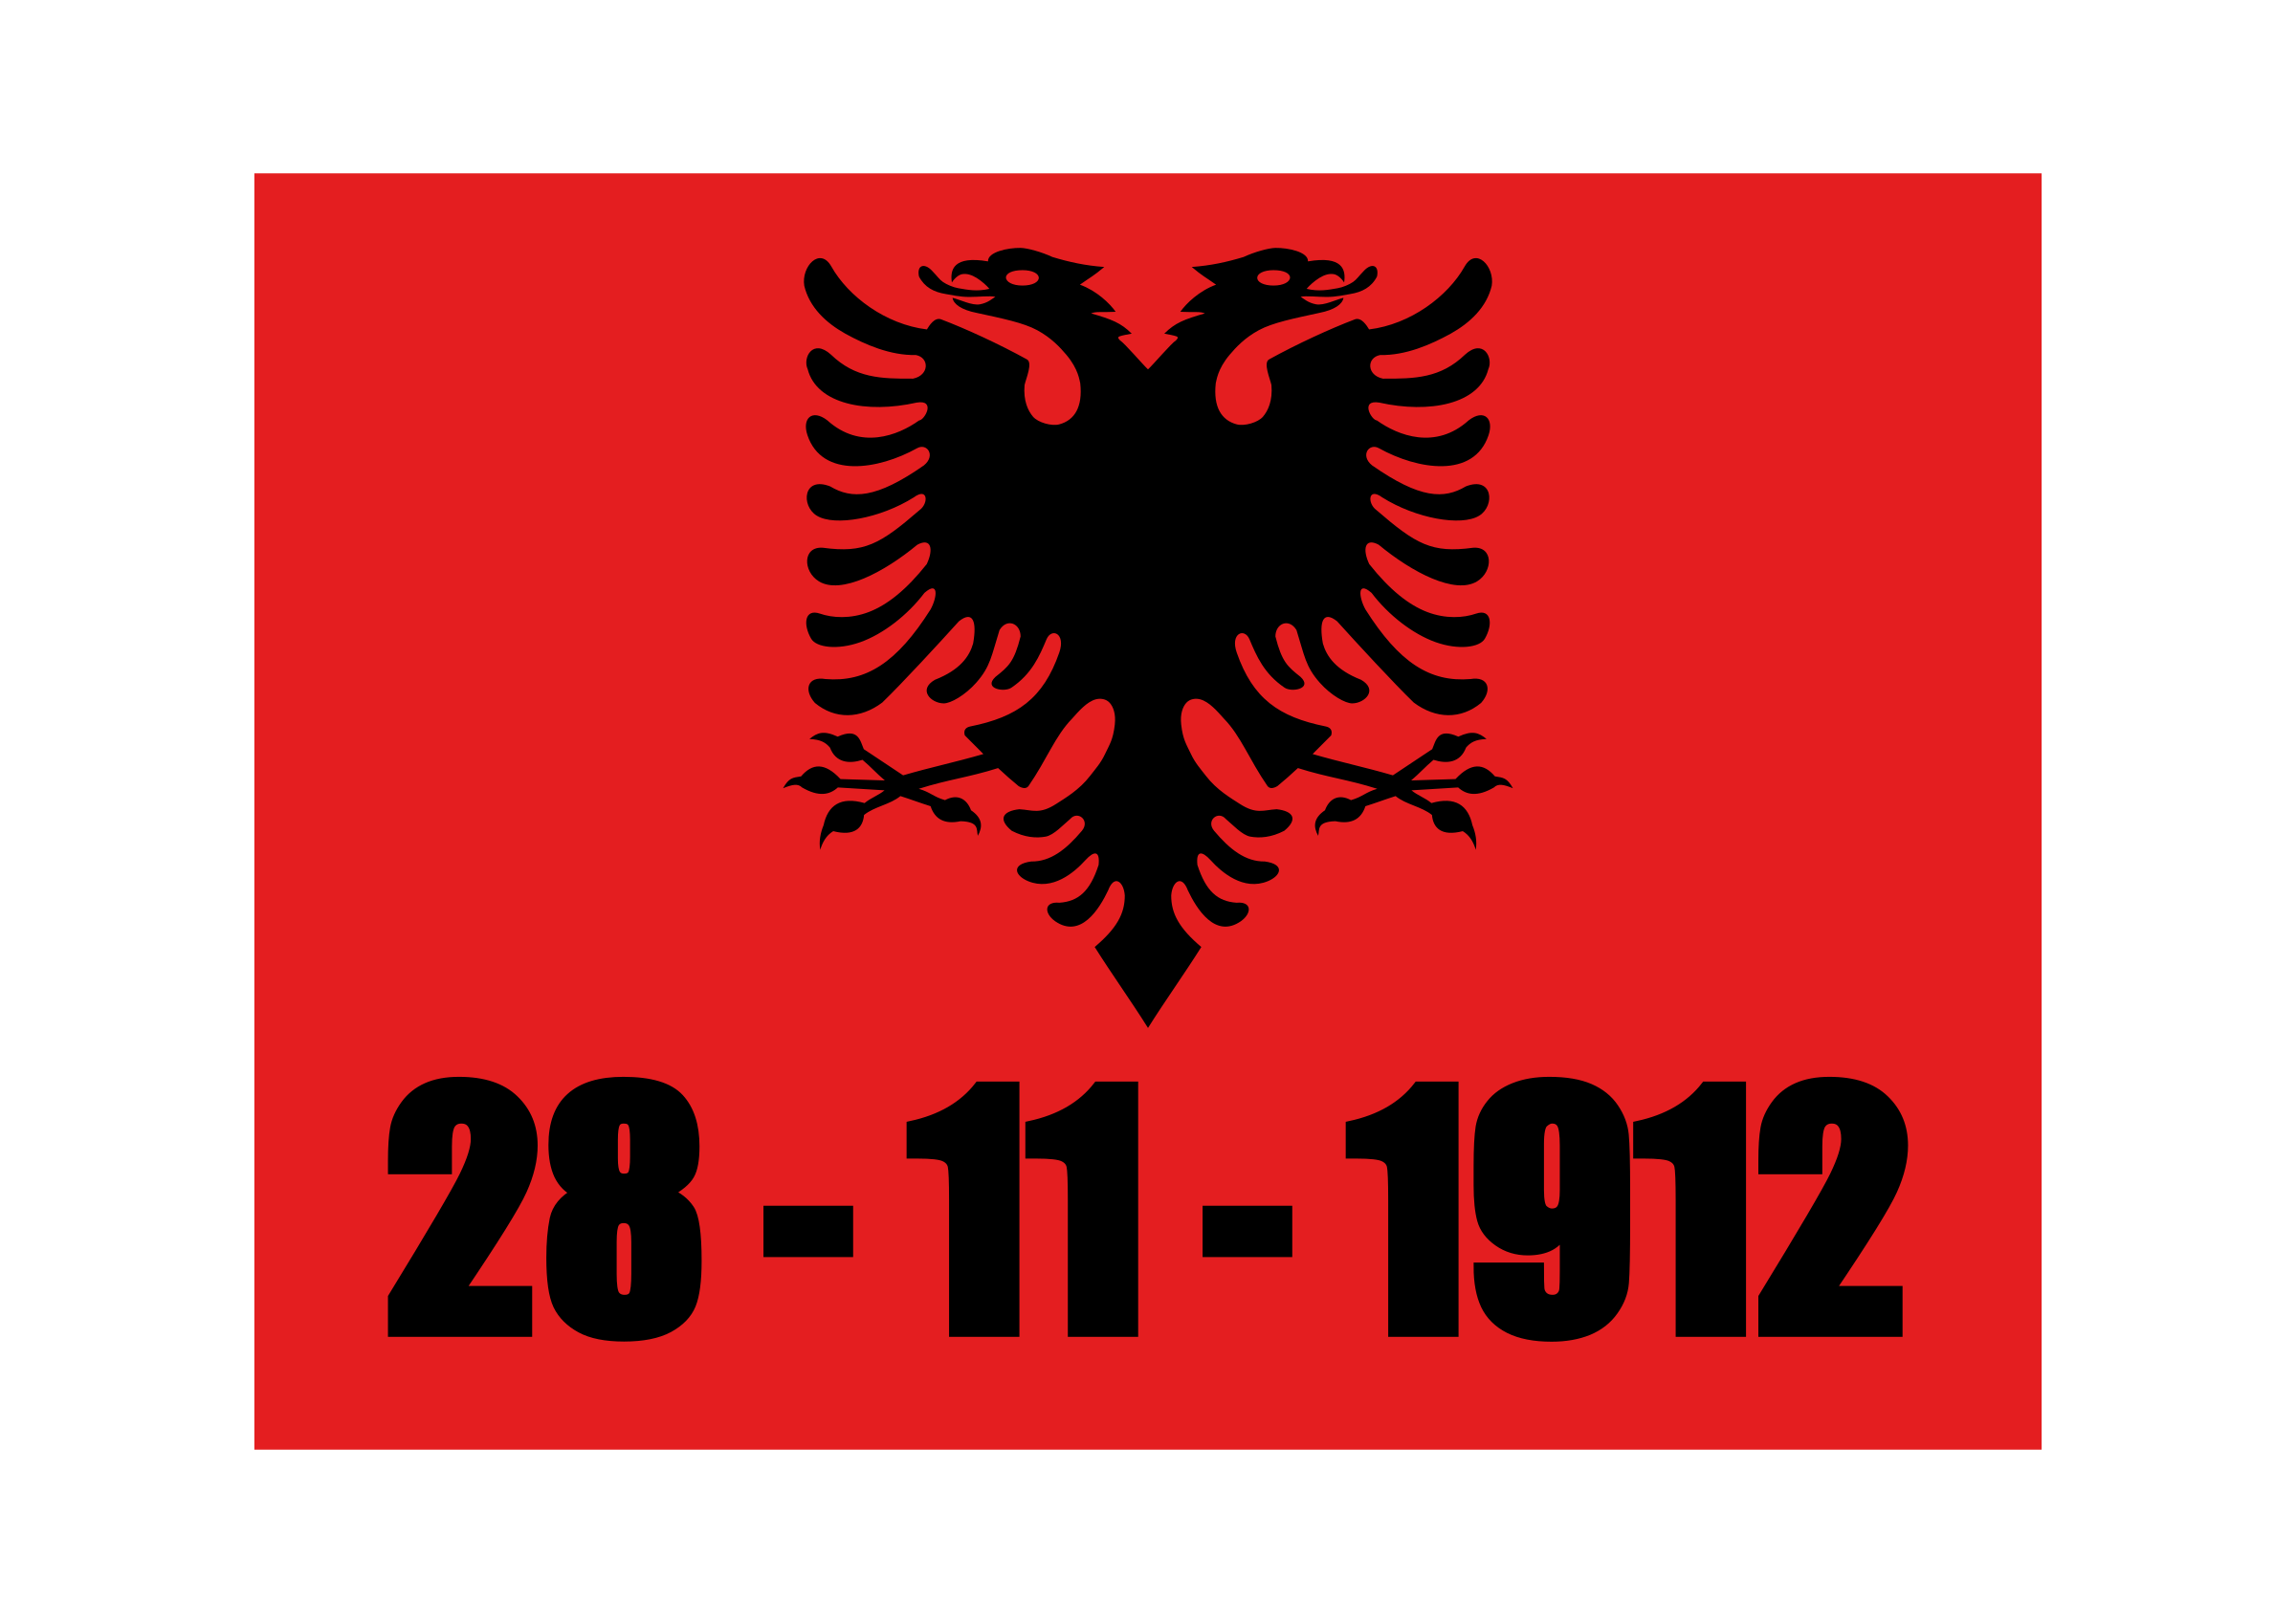 Albania - The day of Independence by shqiponja